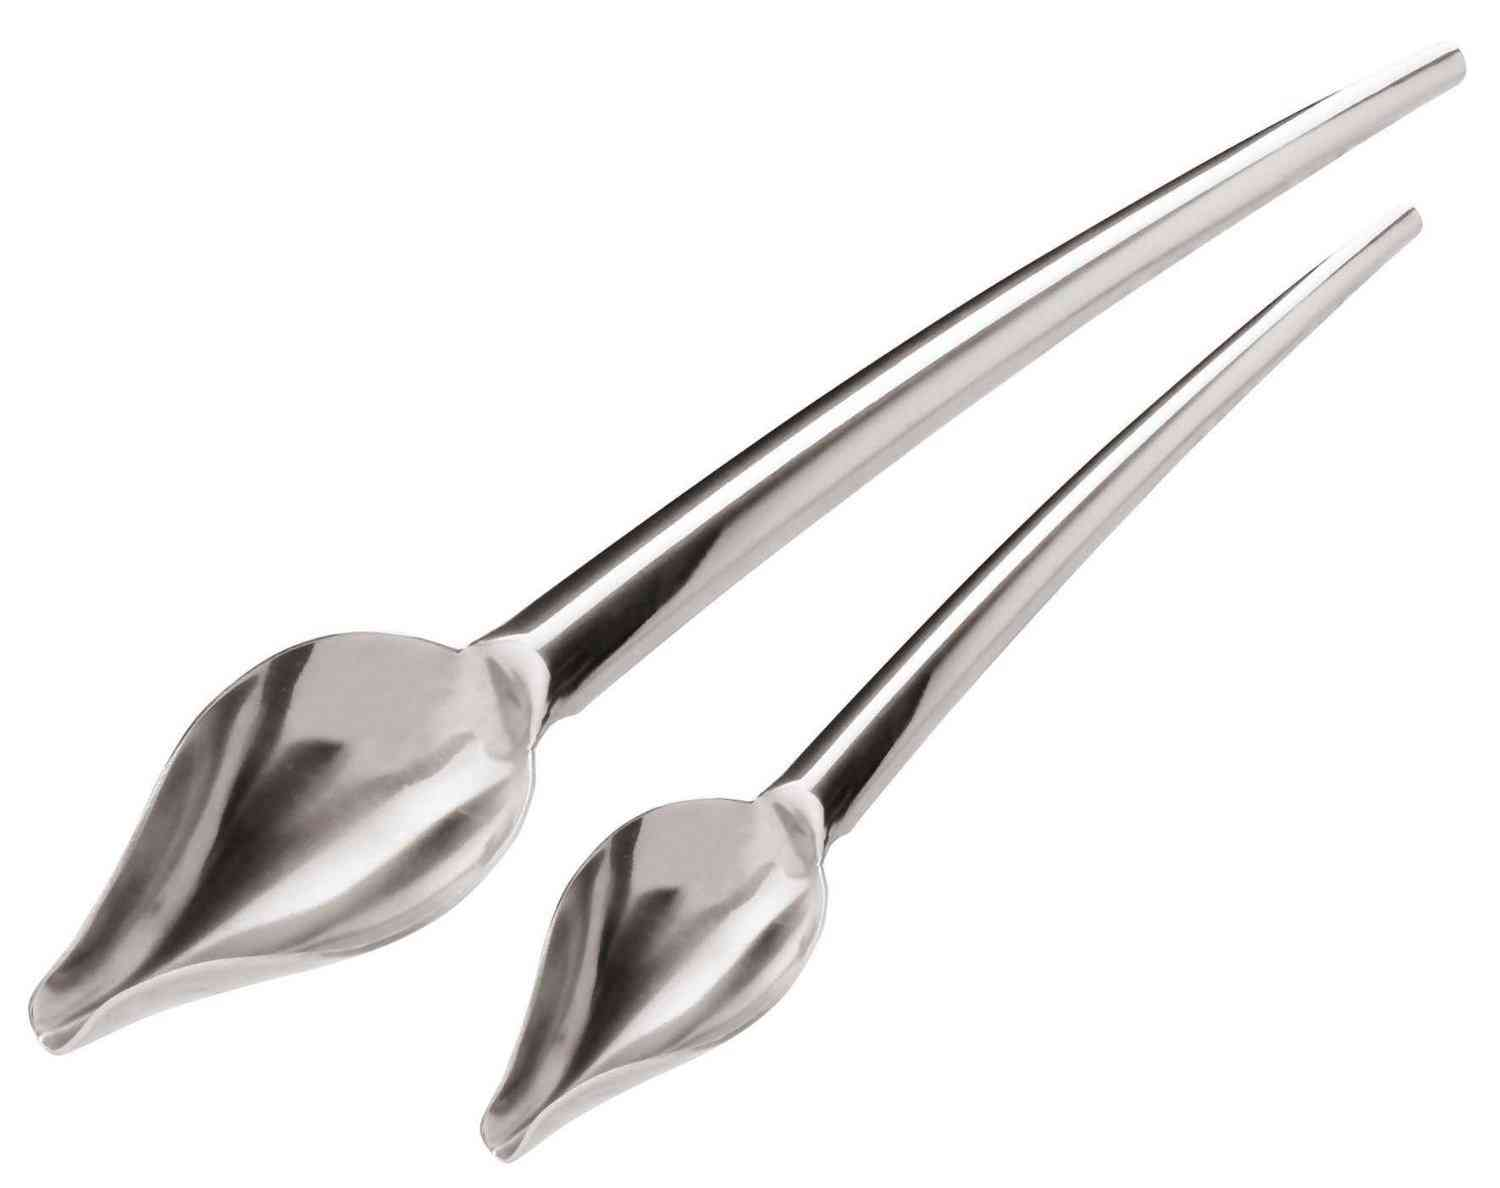 Stainless Steel Drawing Spoons